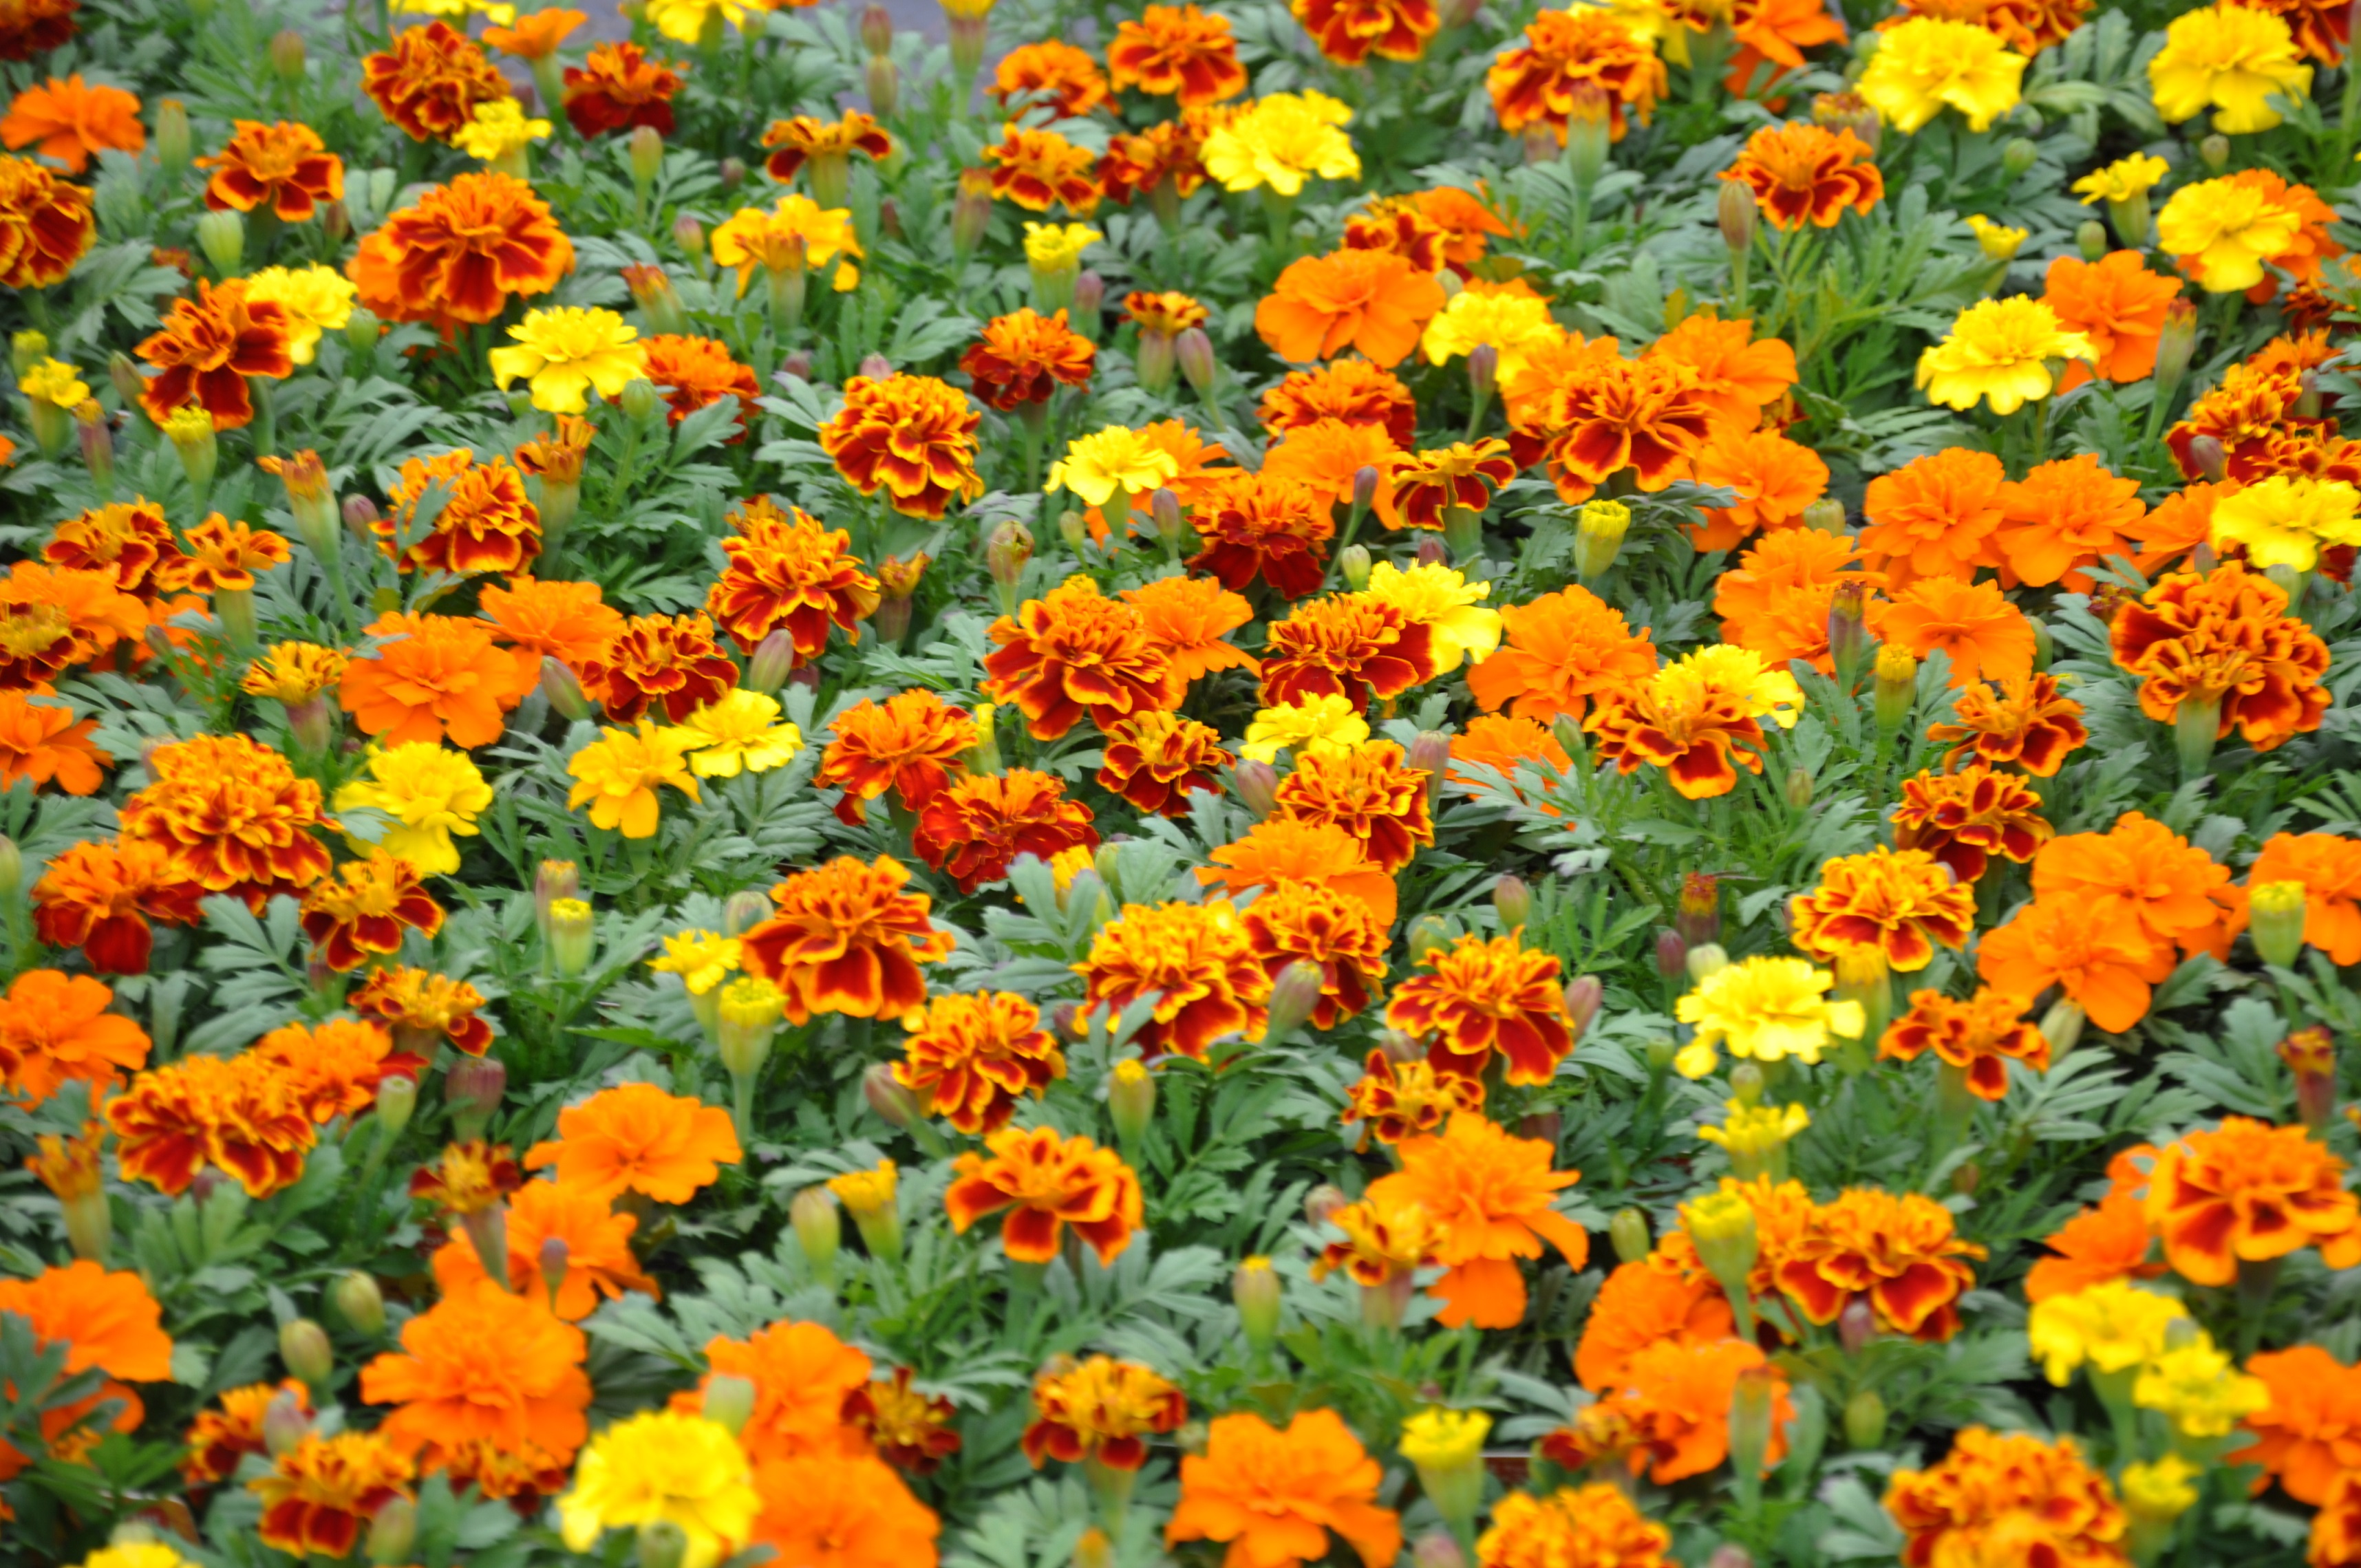 Mixed Marigolds